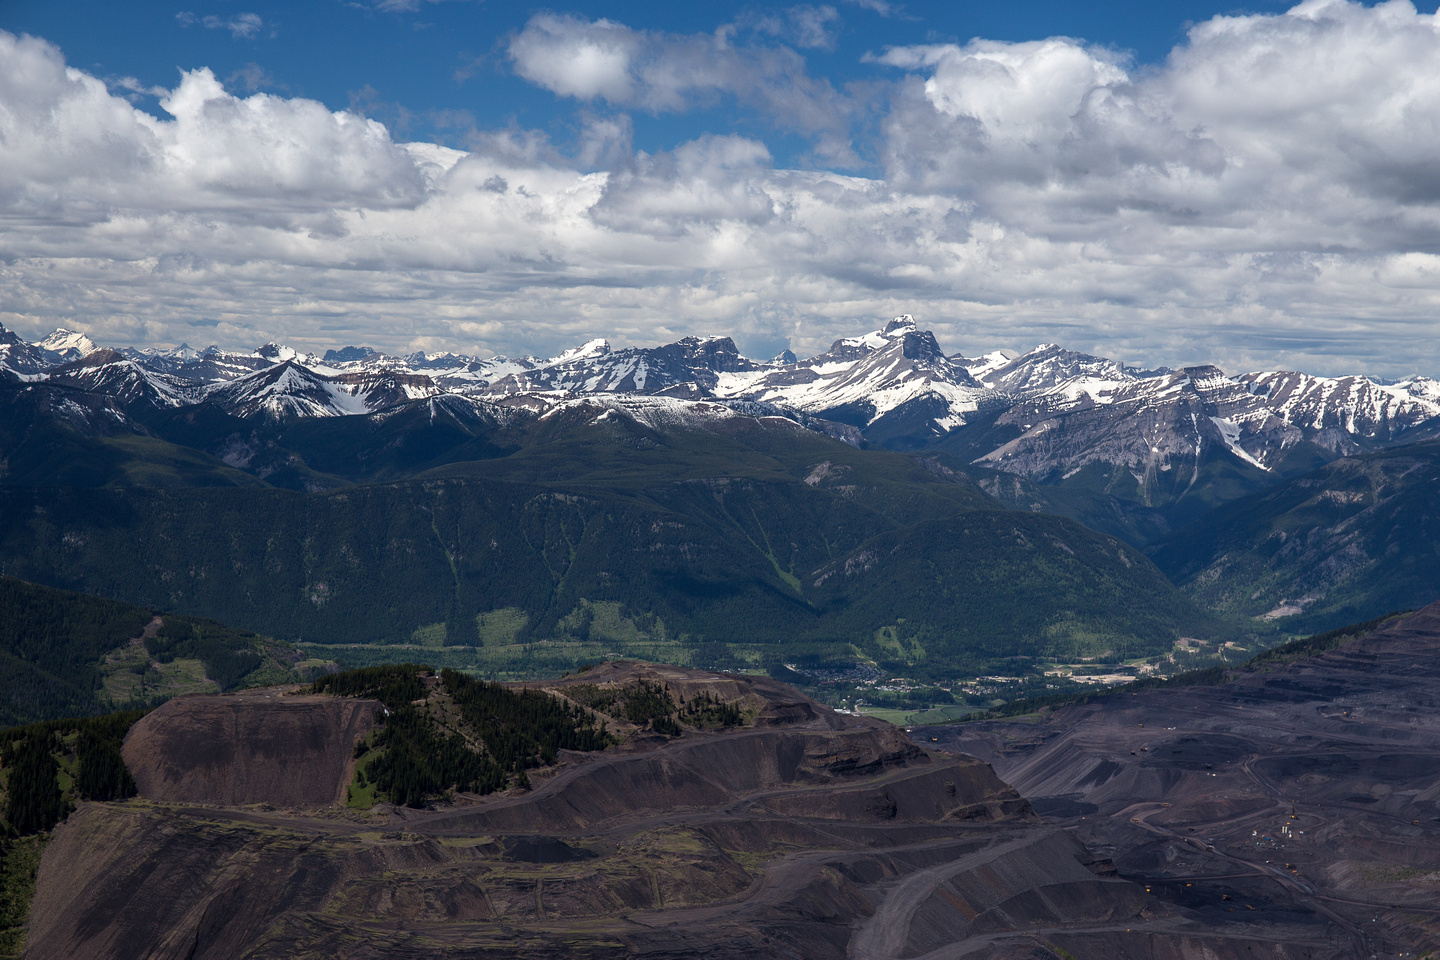 Looking over the massive Sparwood Mine towards the impressive form of Mount Washburn.